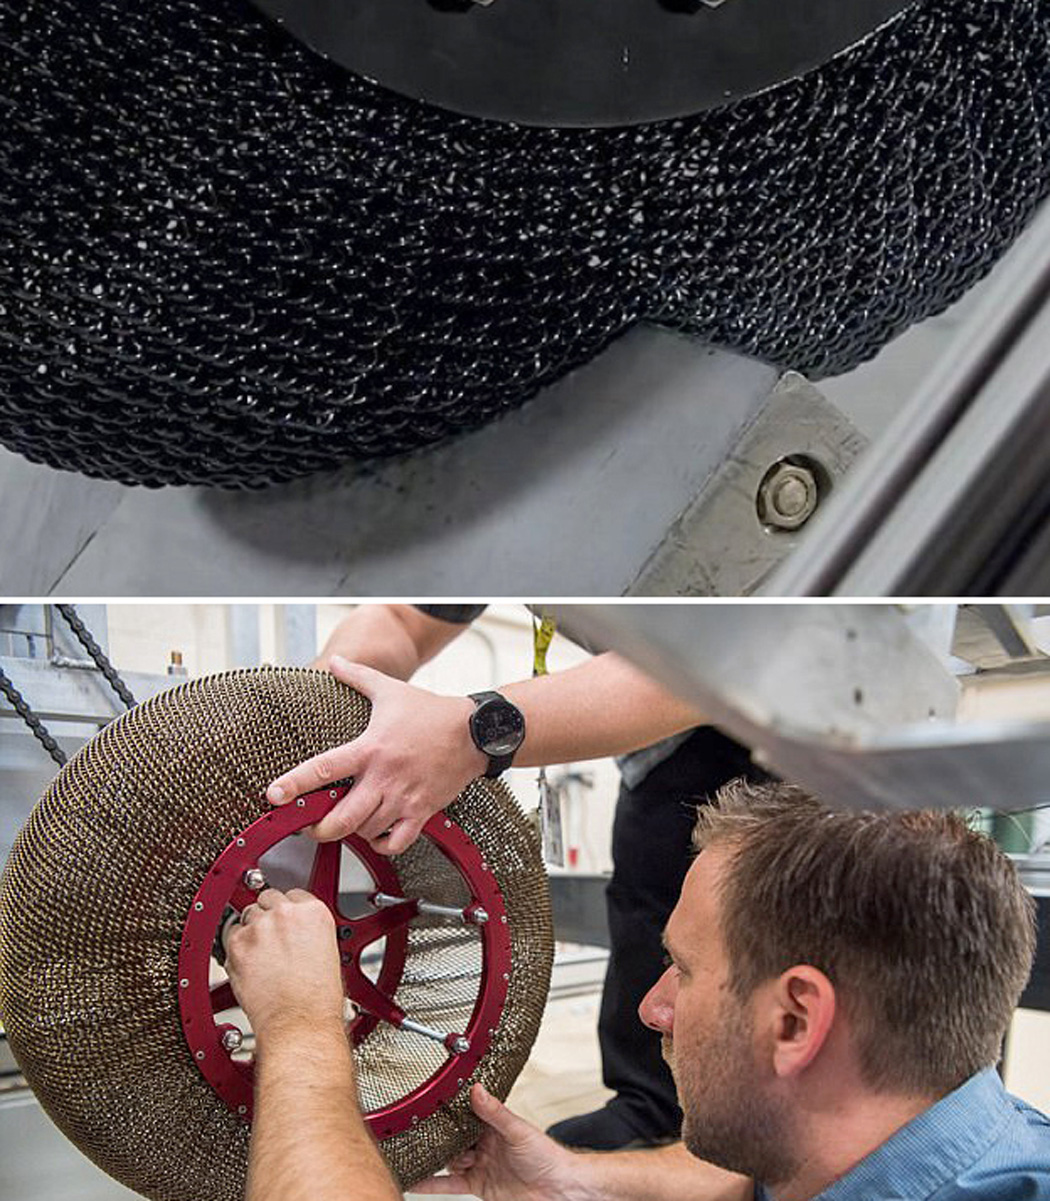 nasa_lunar_tire_05